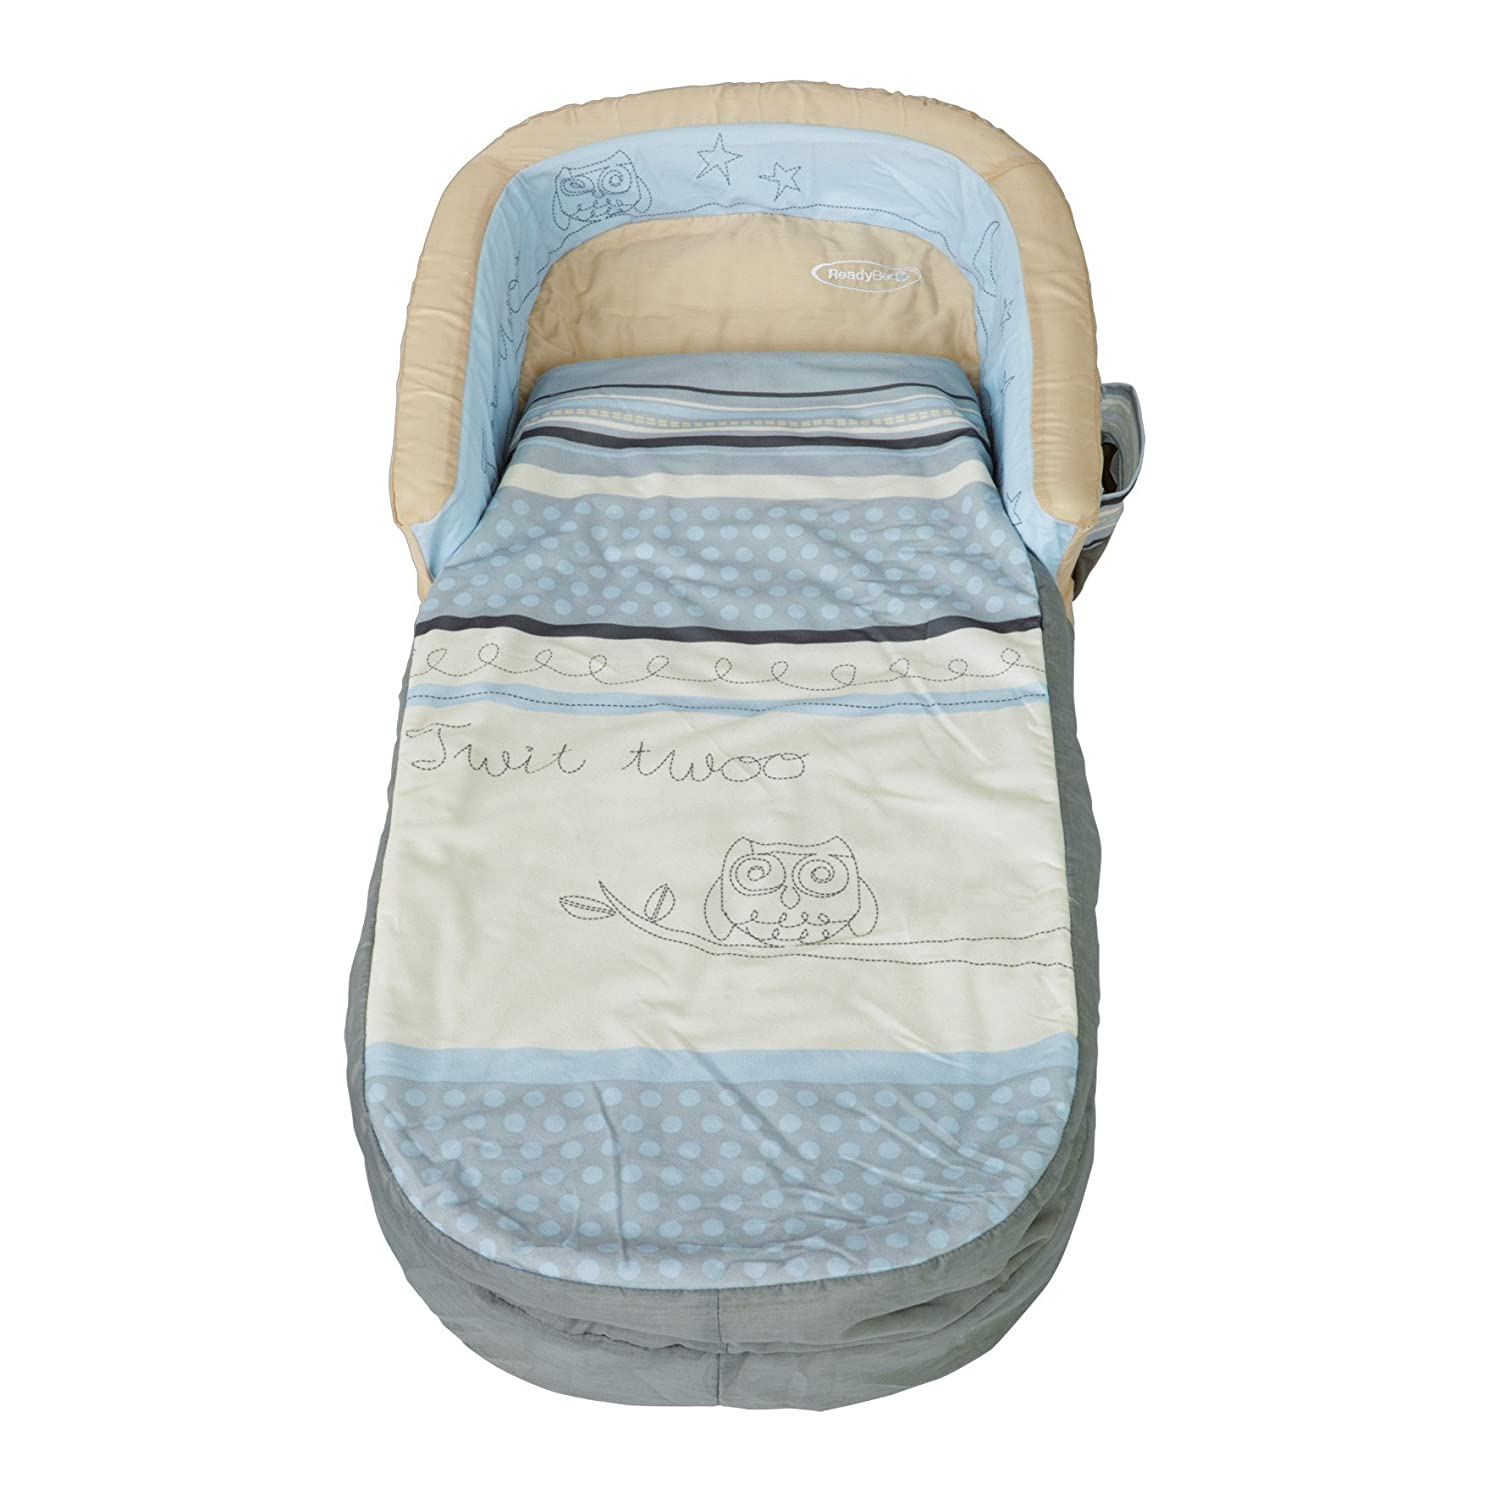 Sleepytime Owl My First ReadyBed - Inflatable Toddler Air Bed and Sleeping Bag in one Worlds Apart 401GNI01E